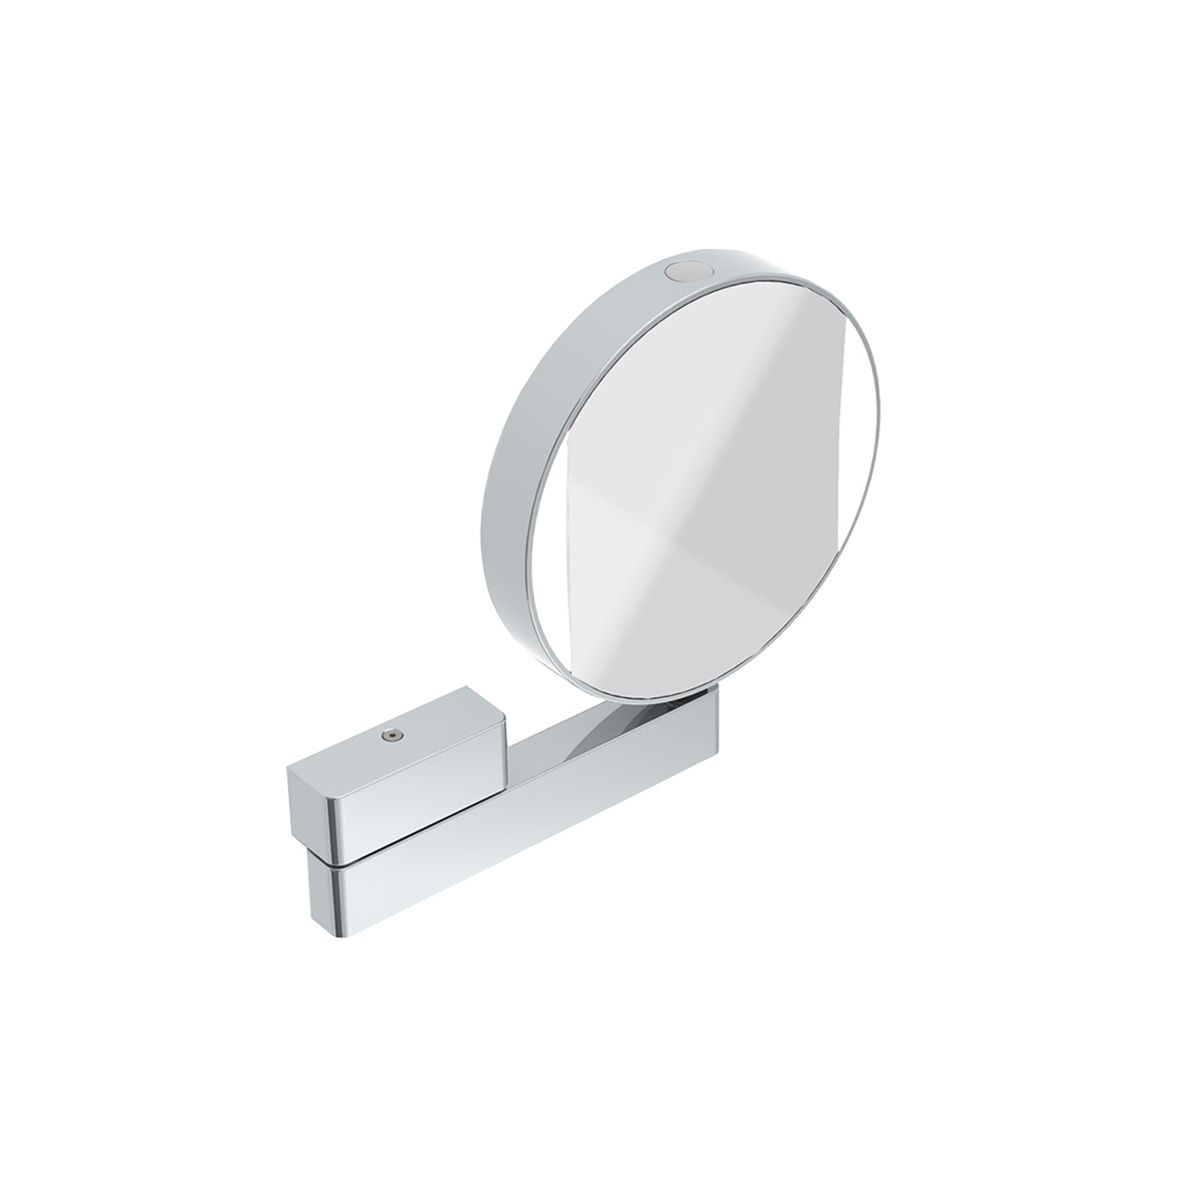 Spiegel 1095.060.17 Magnifying Makeup Mirror